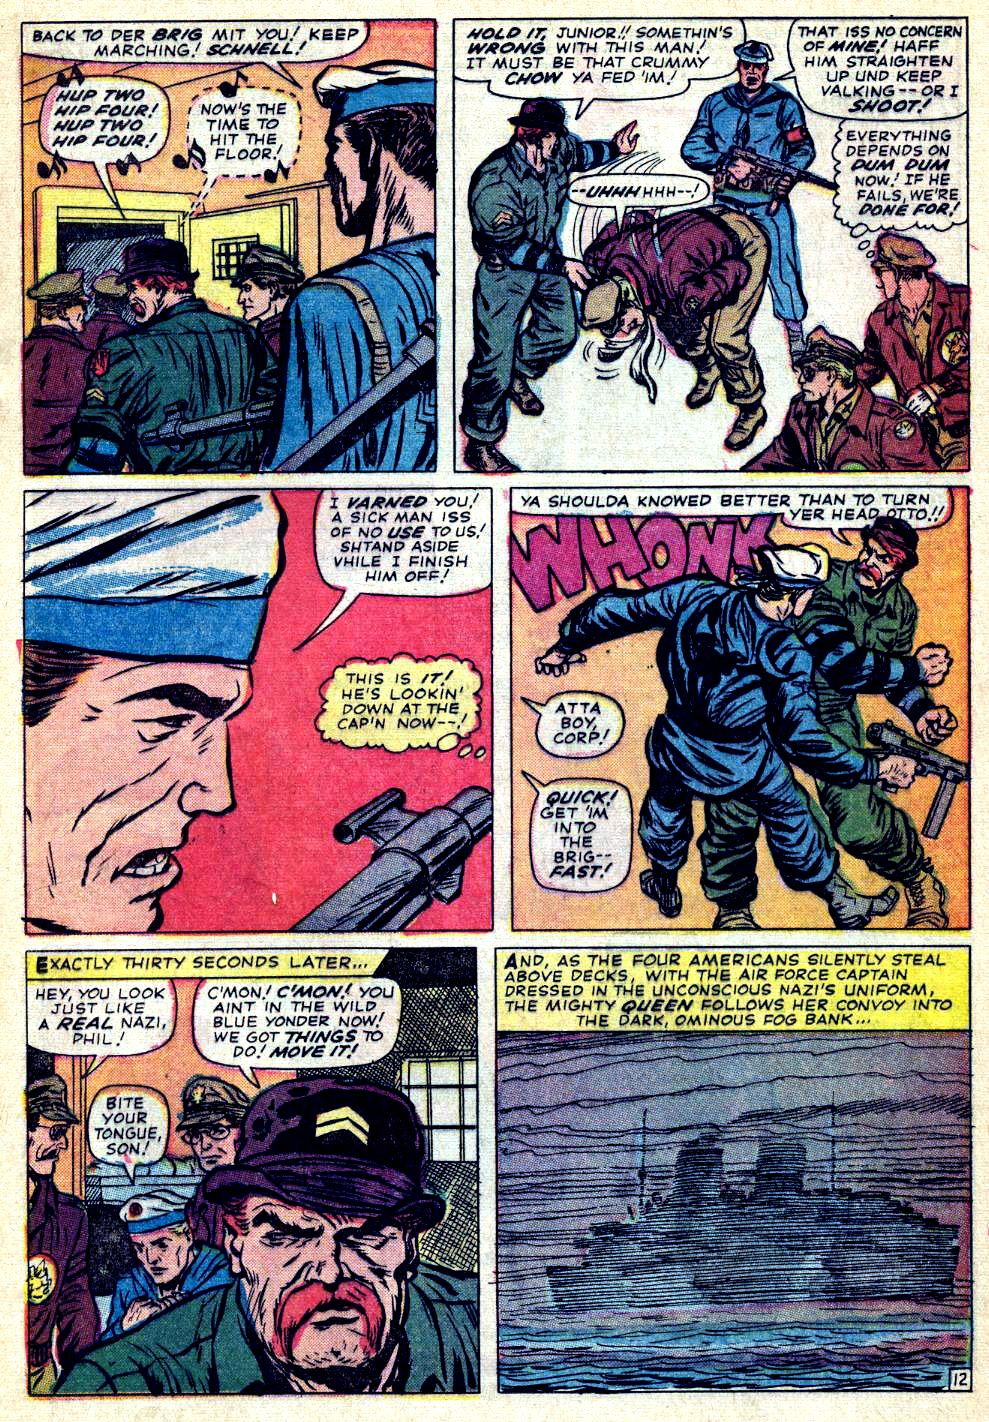 Read online Sgt. Fury comic -  Issue #26 - 17